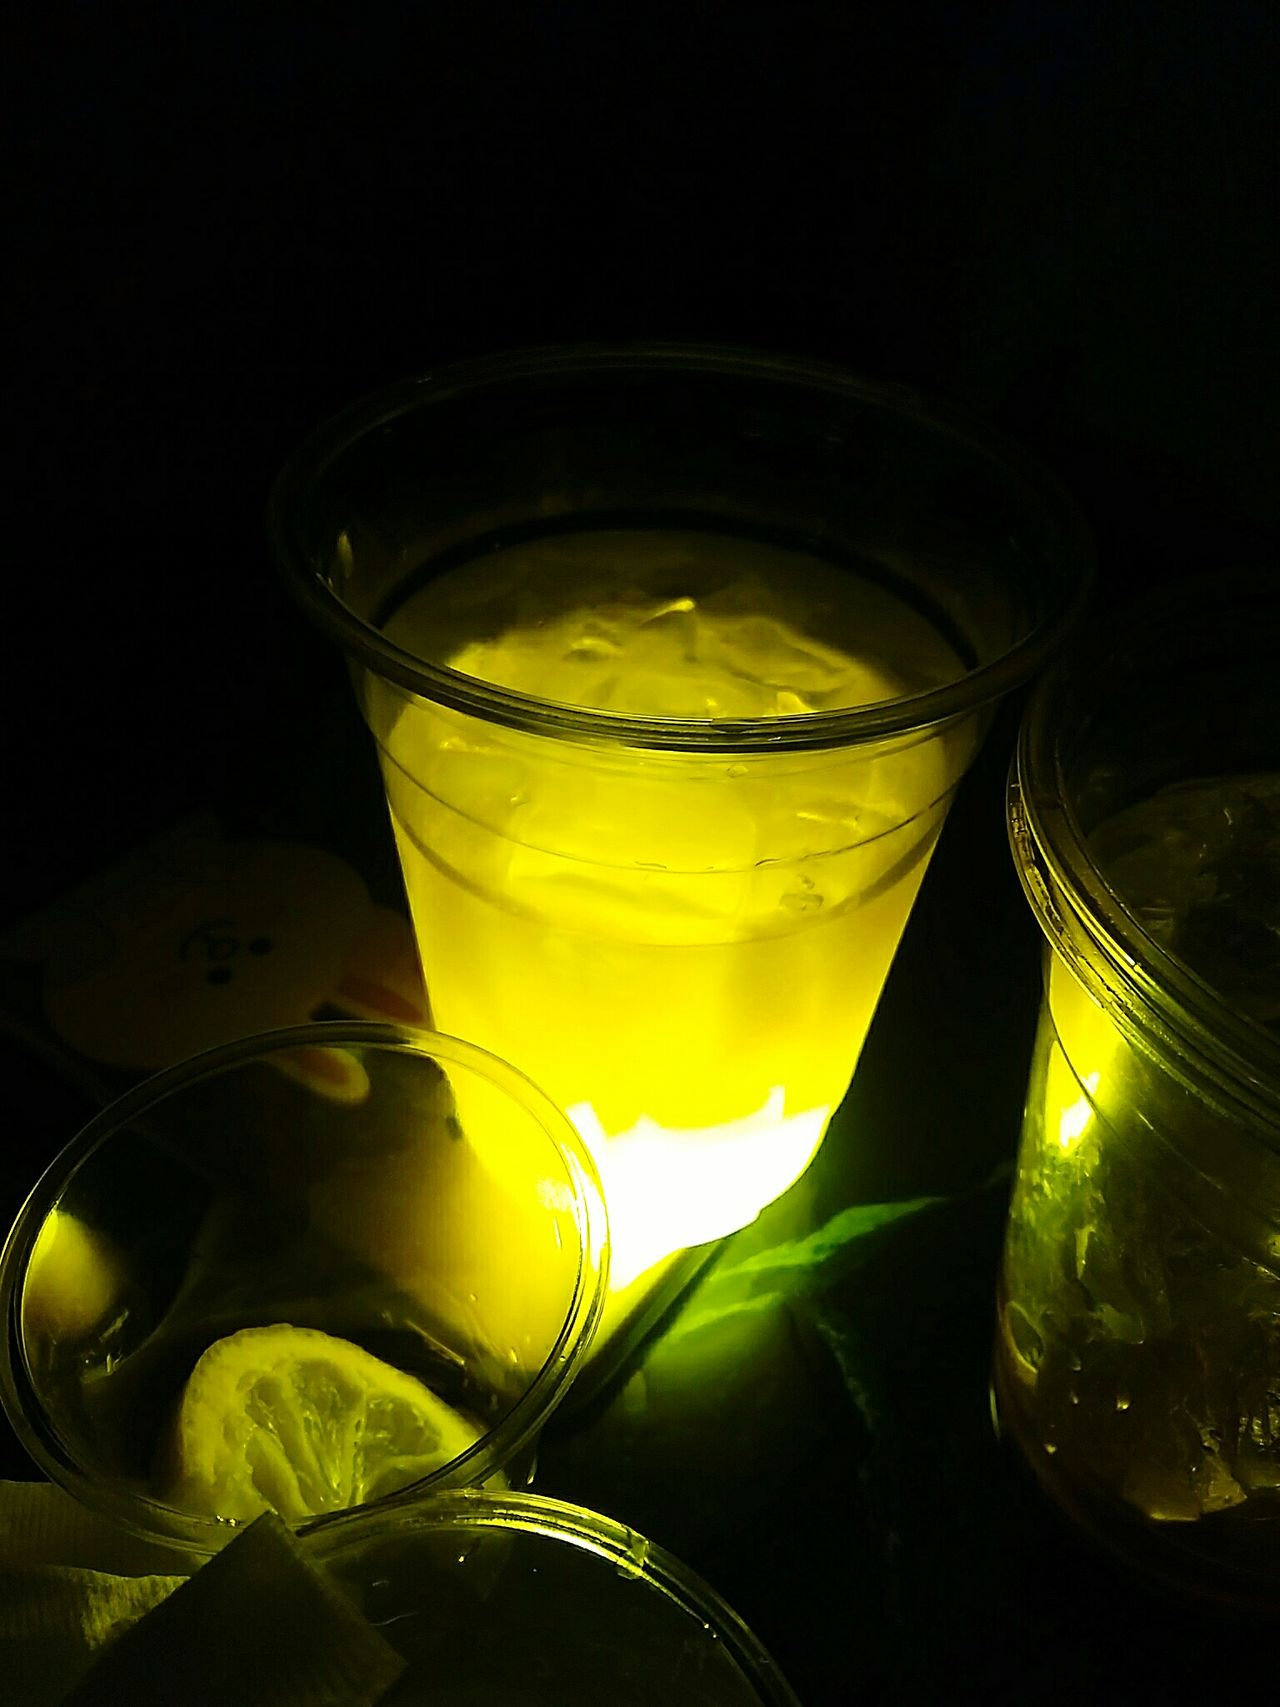 Drink Drinking Glass Yellow No People Green Color Black Background Close-up Alcohol Liqueur Freshness Crystal Glassware Cocktails Cocktail Cocktails🍹 Cocktail Time Lemon Night Nightclub Nighttime Shiny Illuminated Luminous Light Drinks Drinking